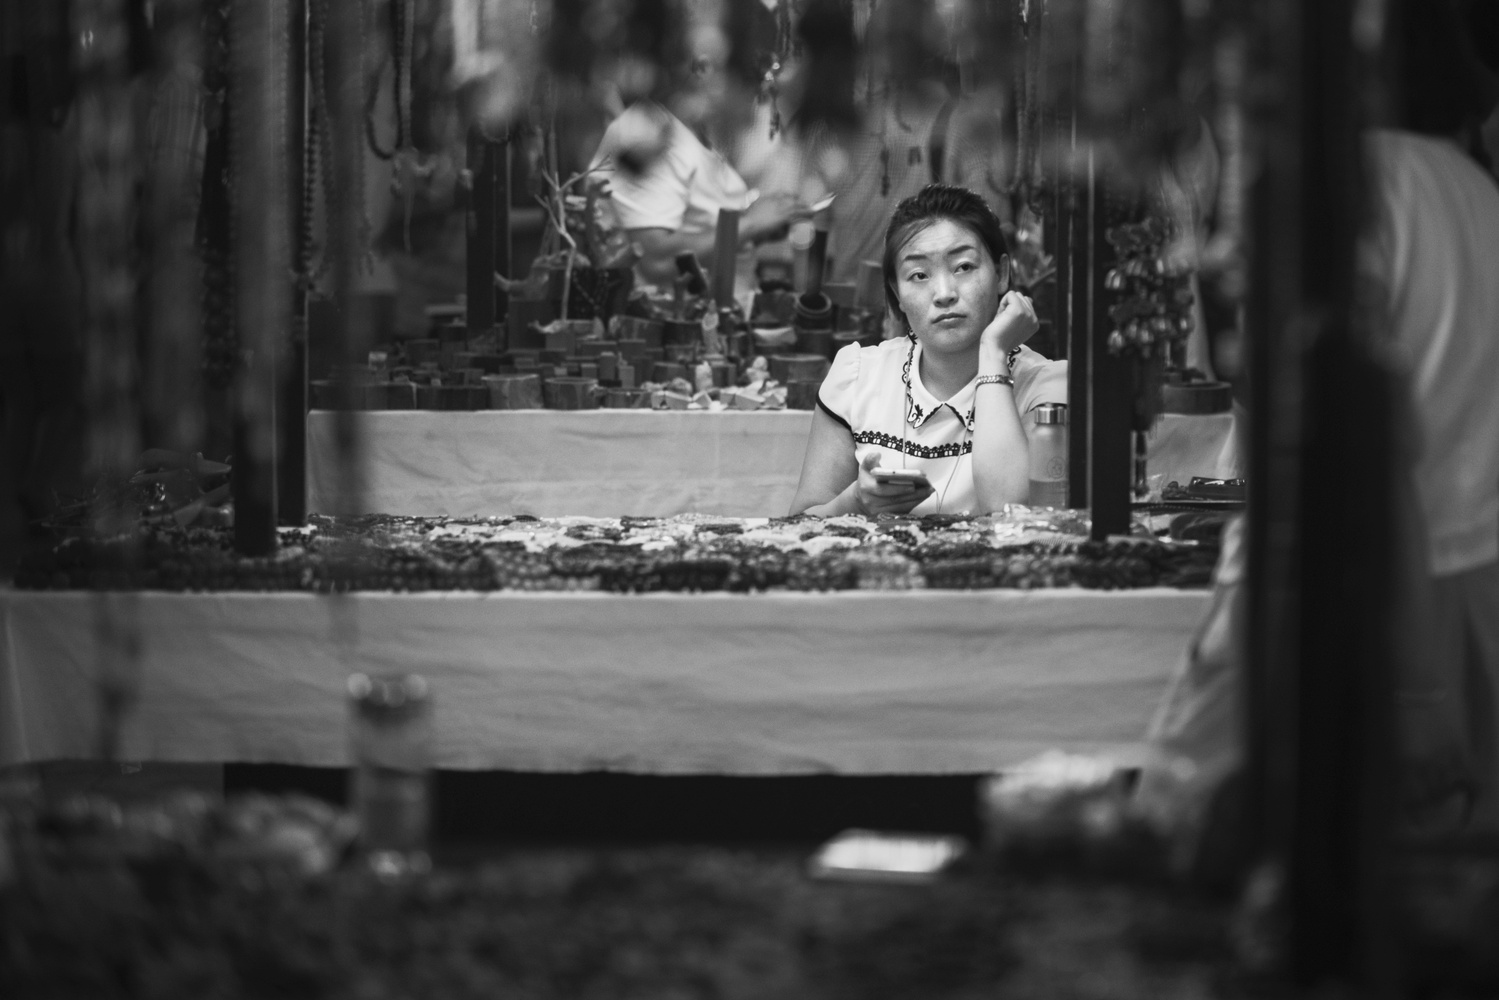 A craftswoman at the night market in Dunhuang by Léonard Rodriguez